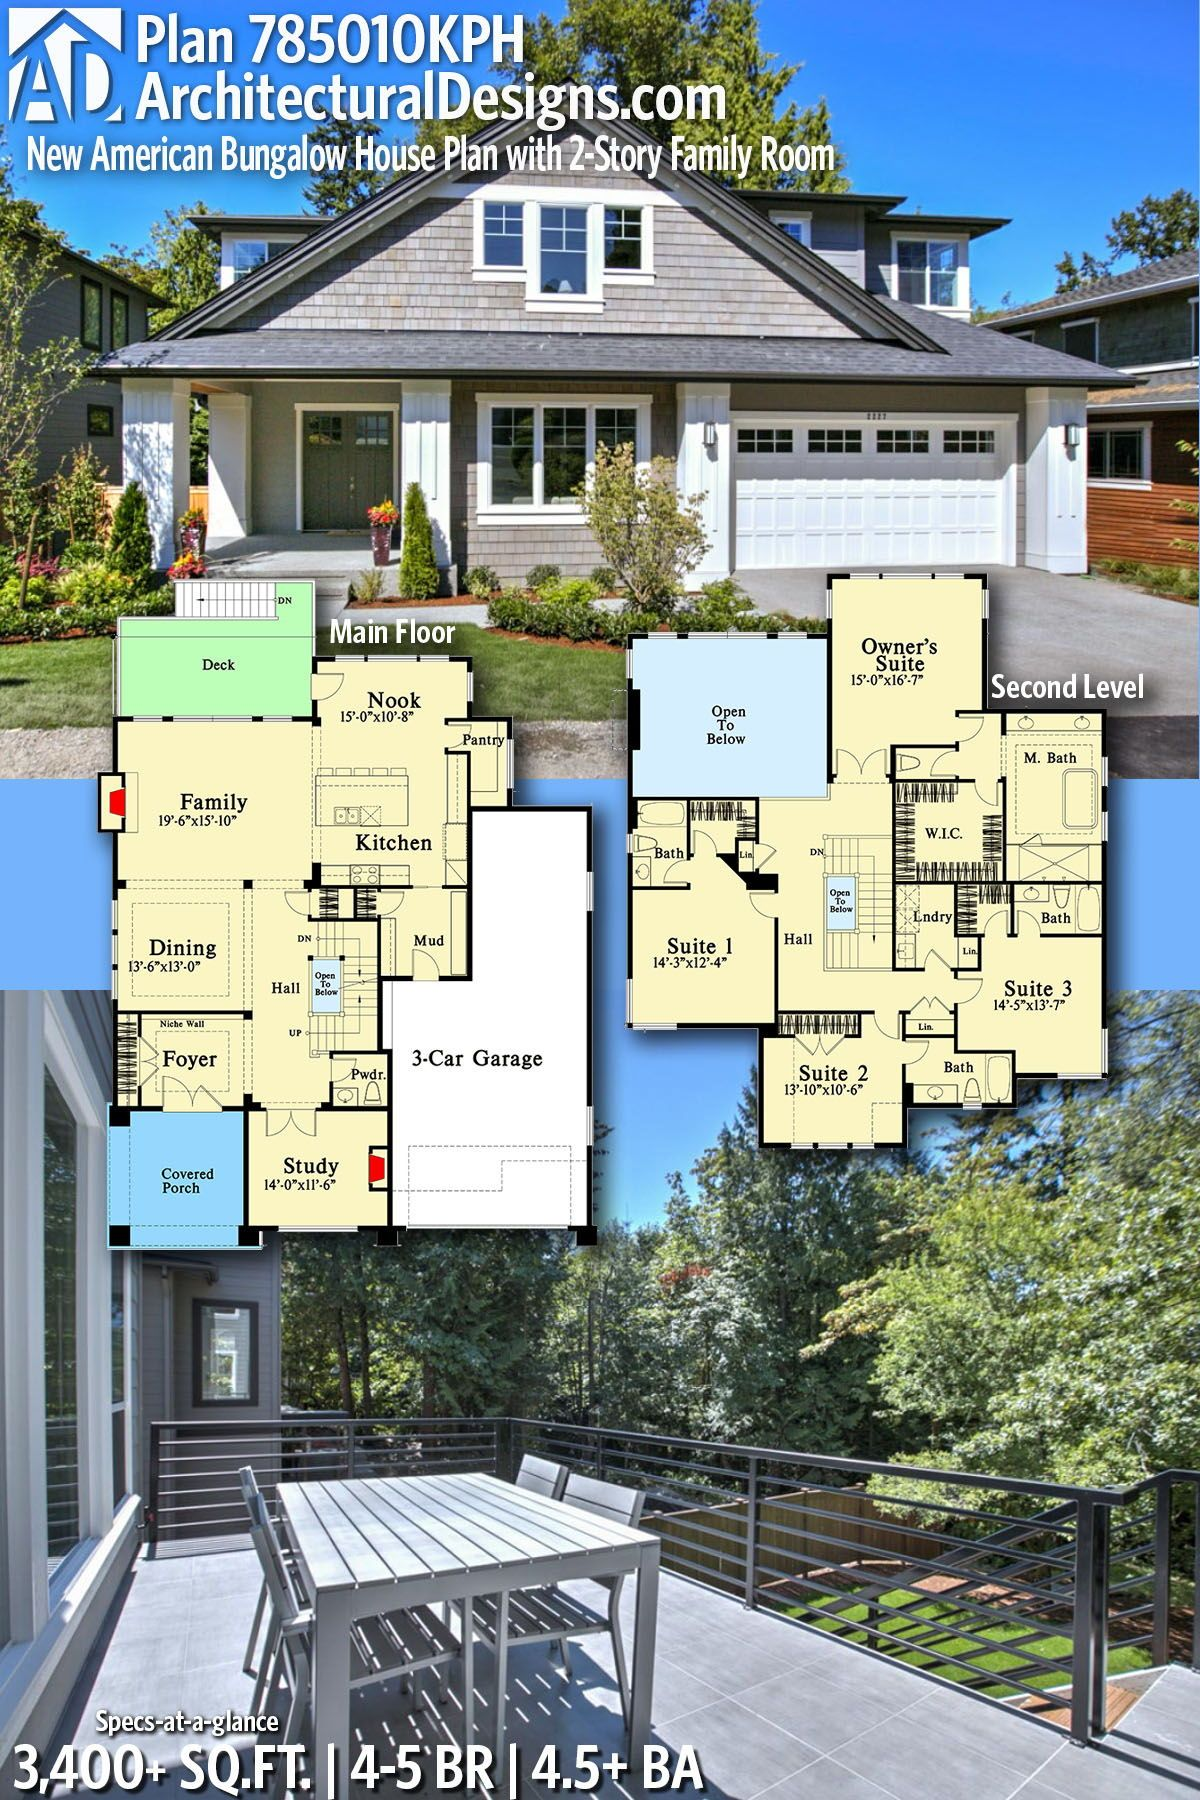 Plan 785010kph New American Bungalow House Plan With 2 Story Family Room Bungalow House Plans House Plans Bungalow Style House Plans